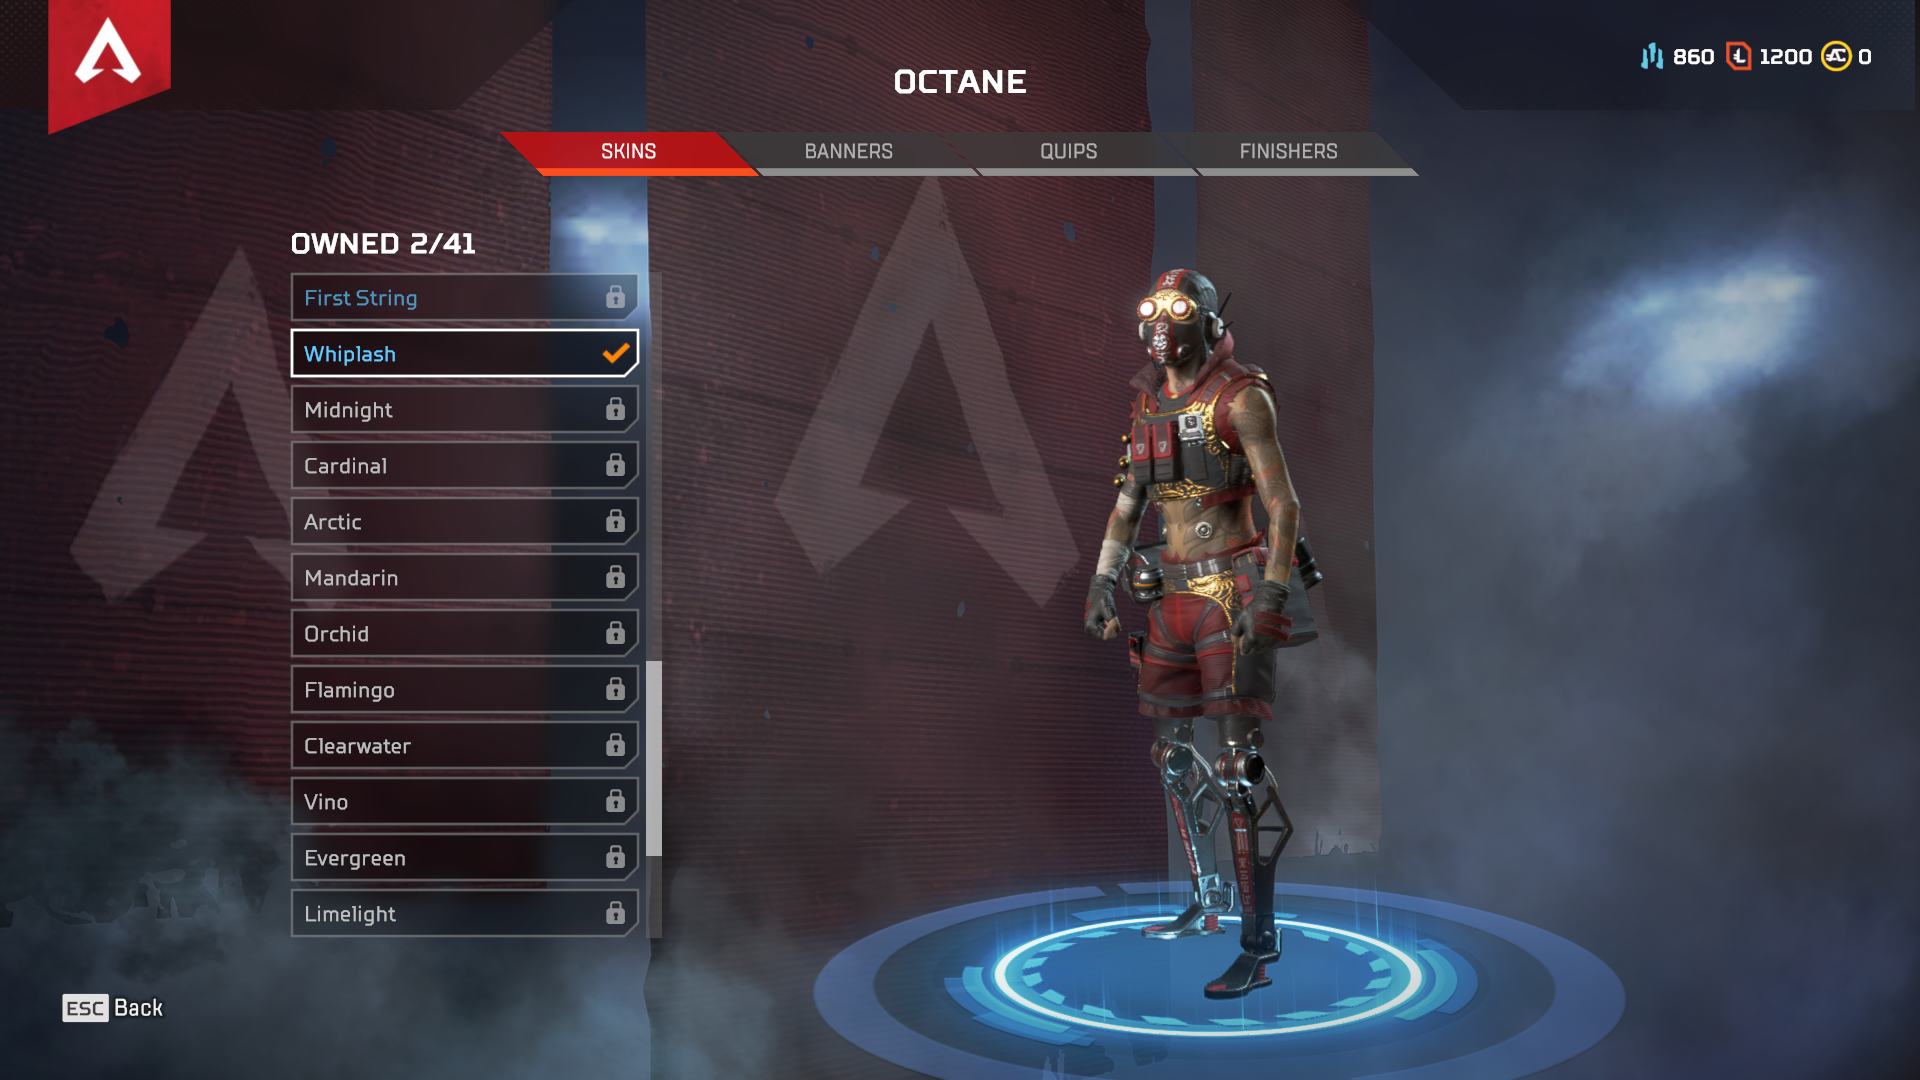 Apex Legends has a new Octane skin available through Twitch Prime